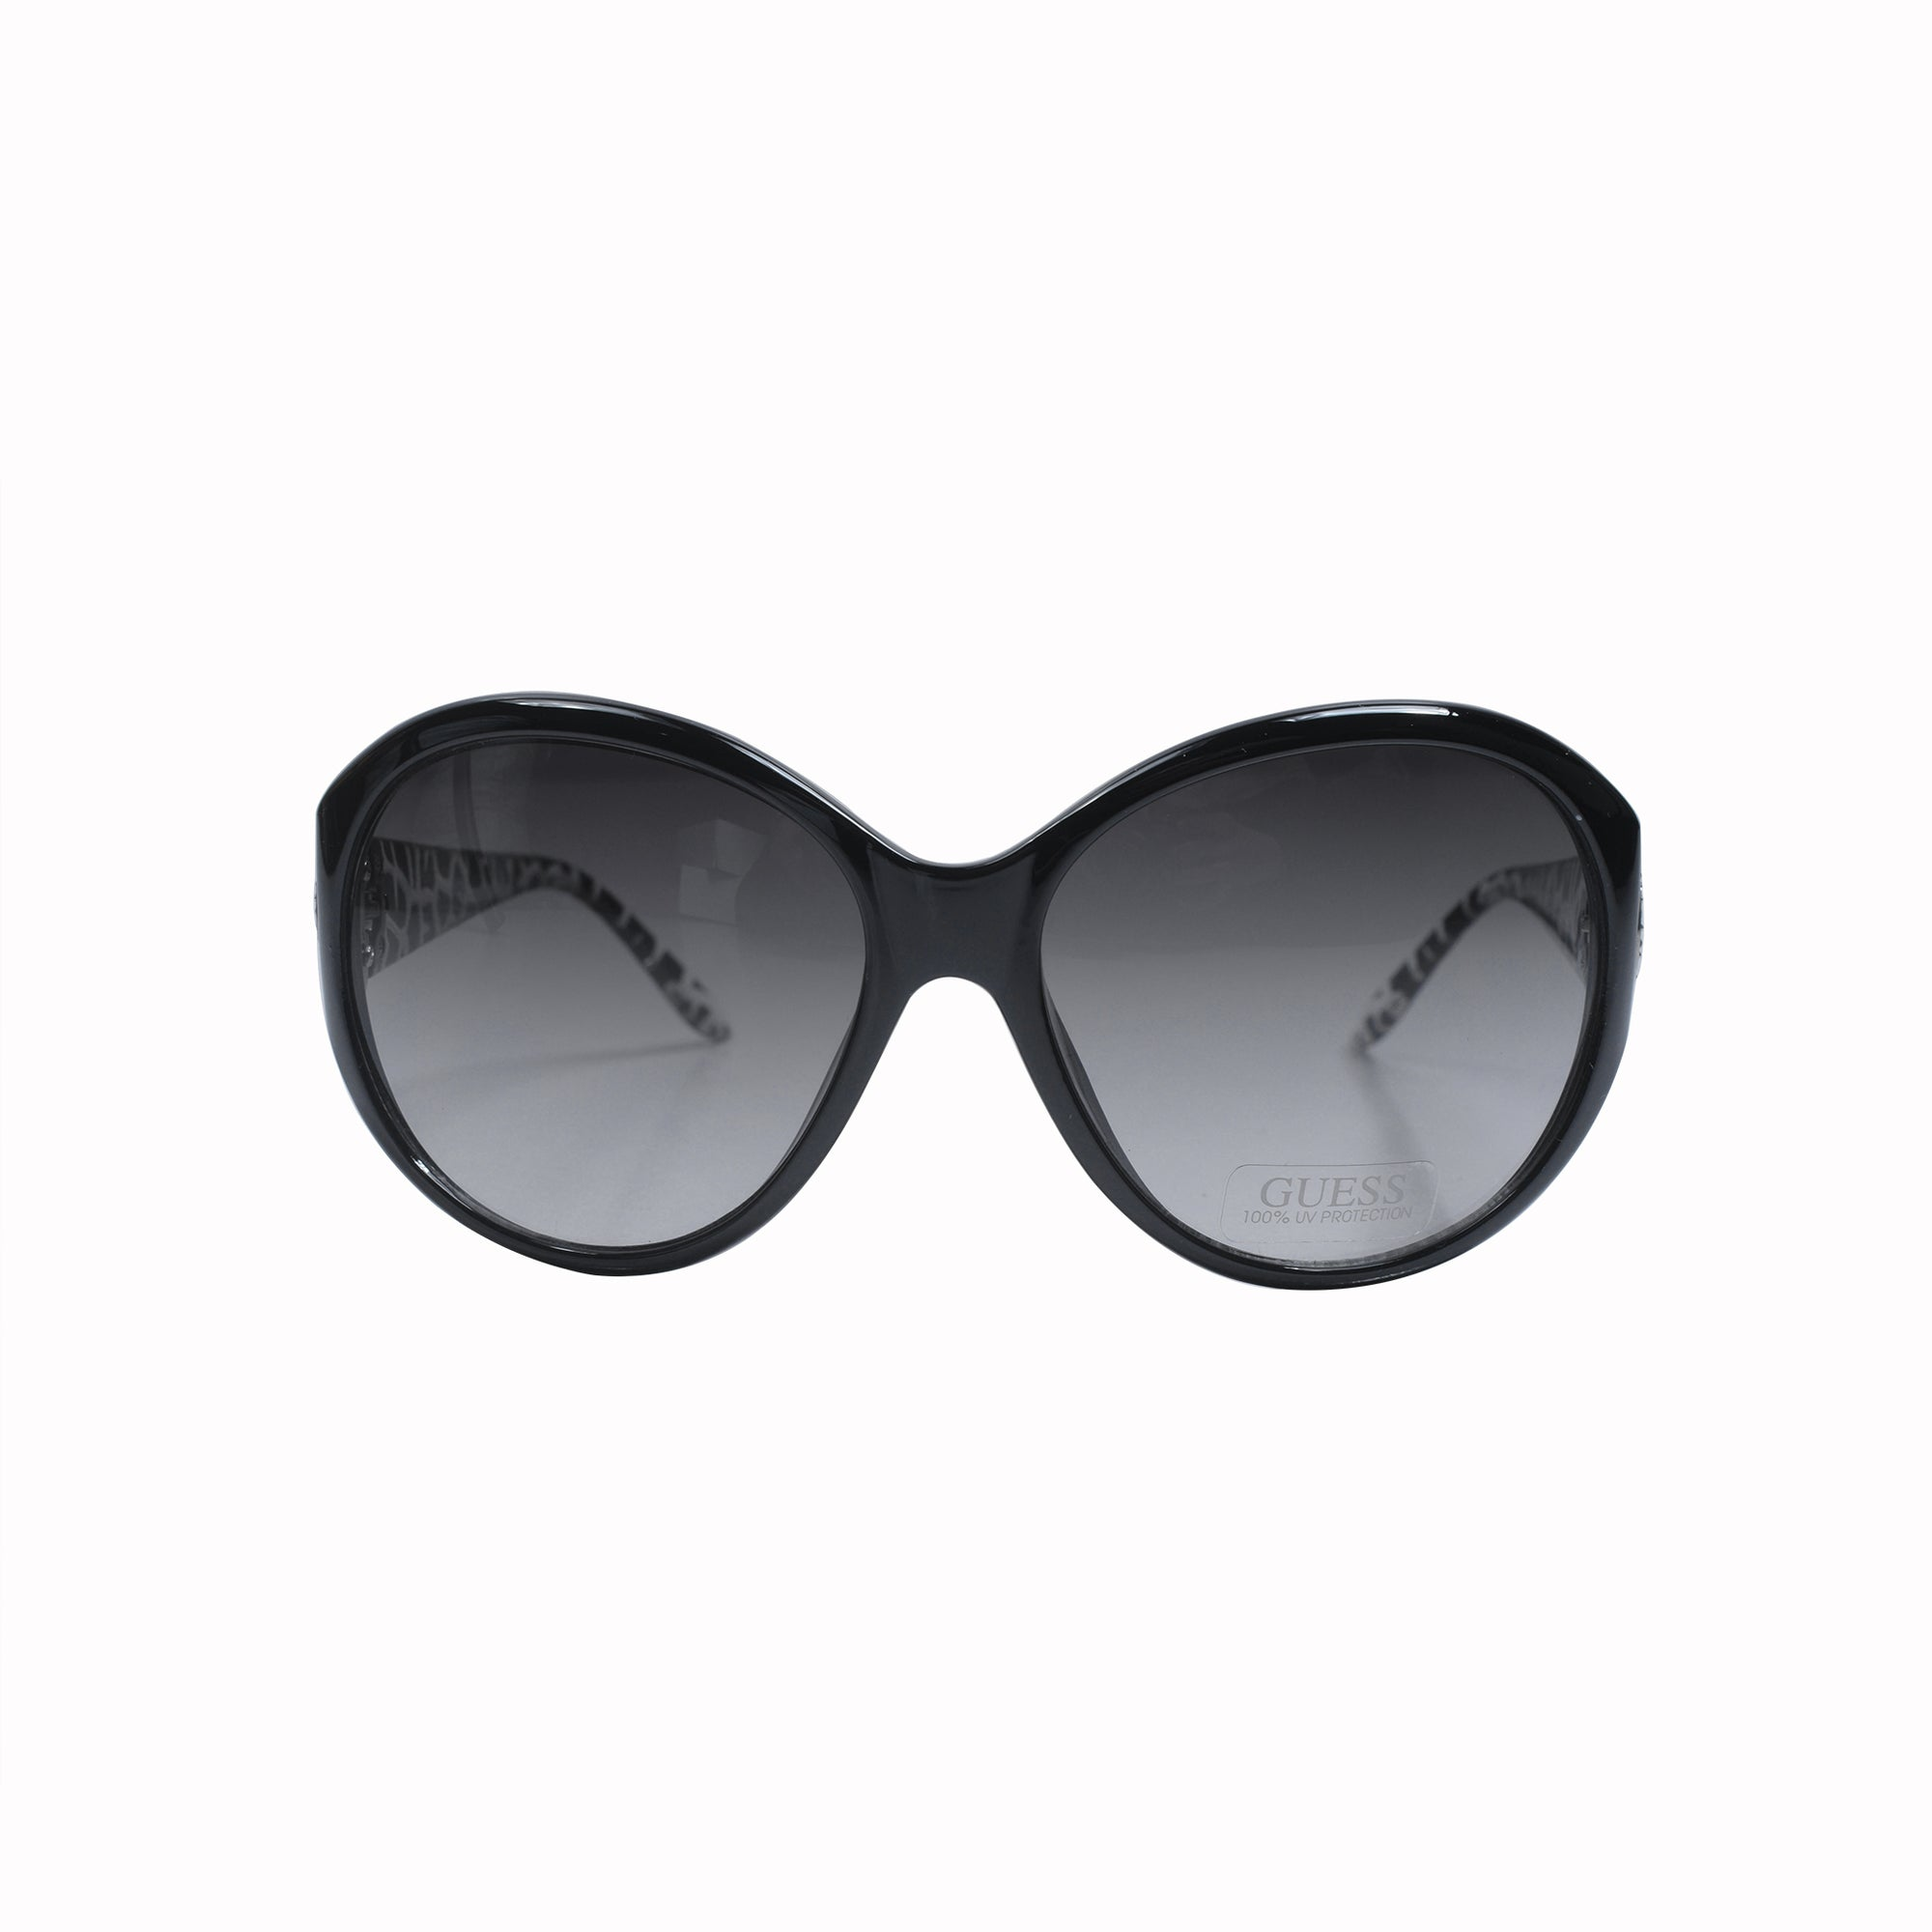 Guess Sunglasses For Women-SK0133